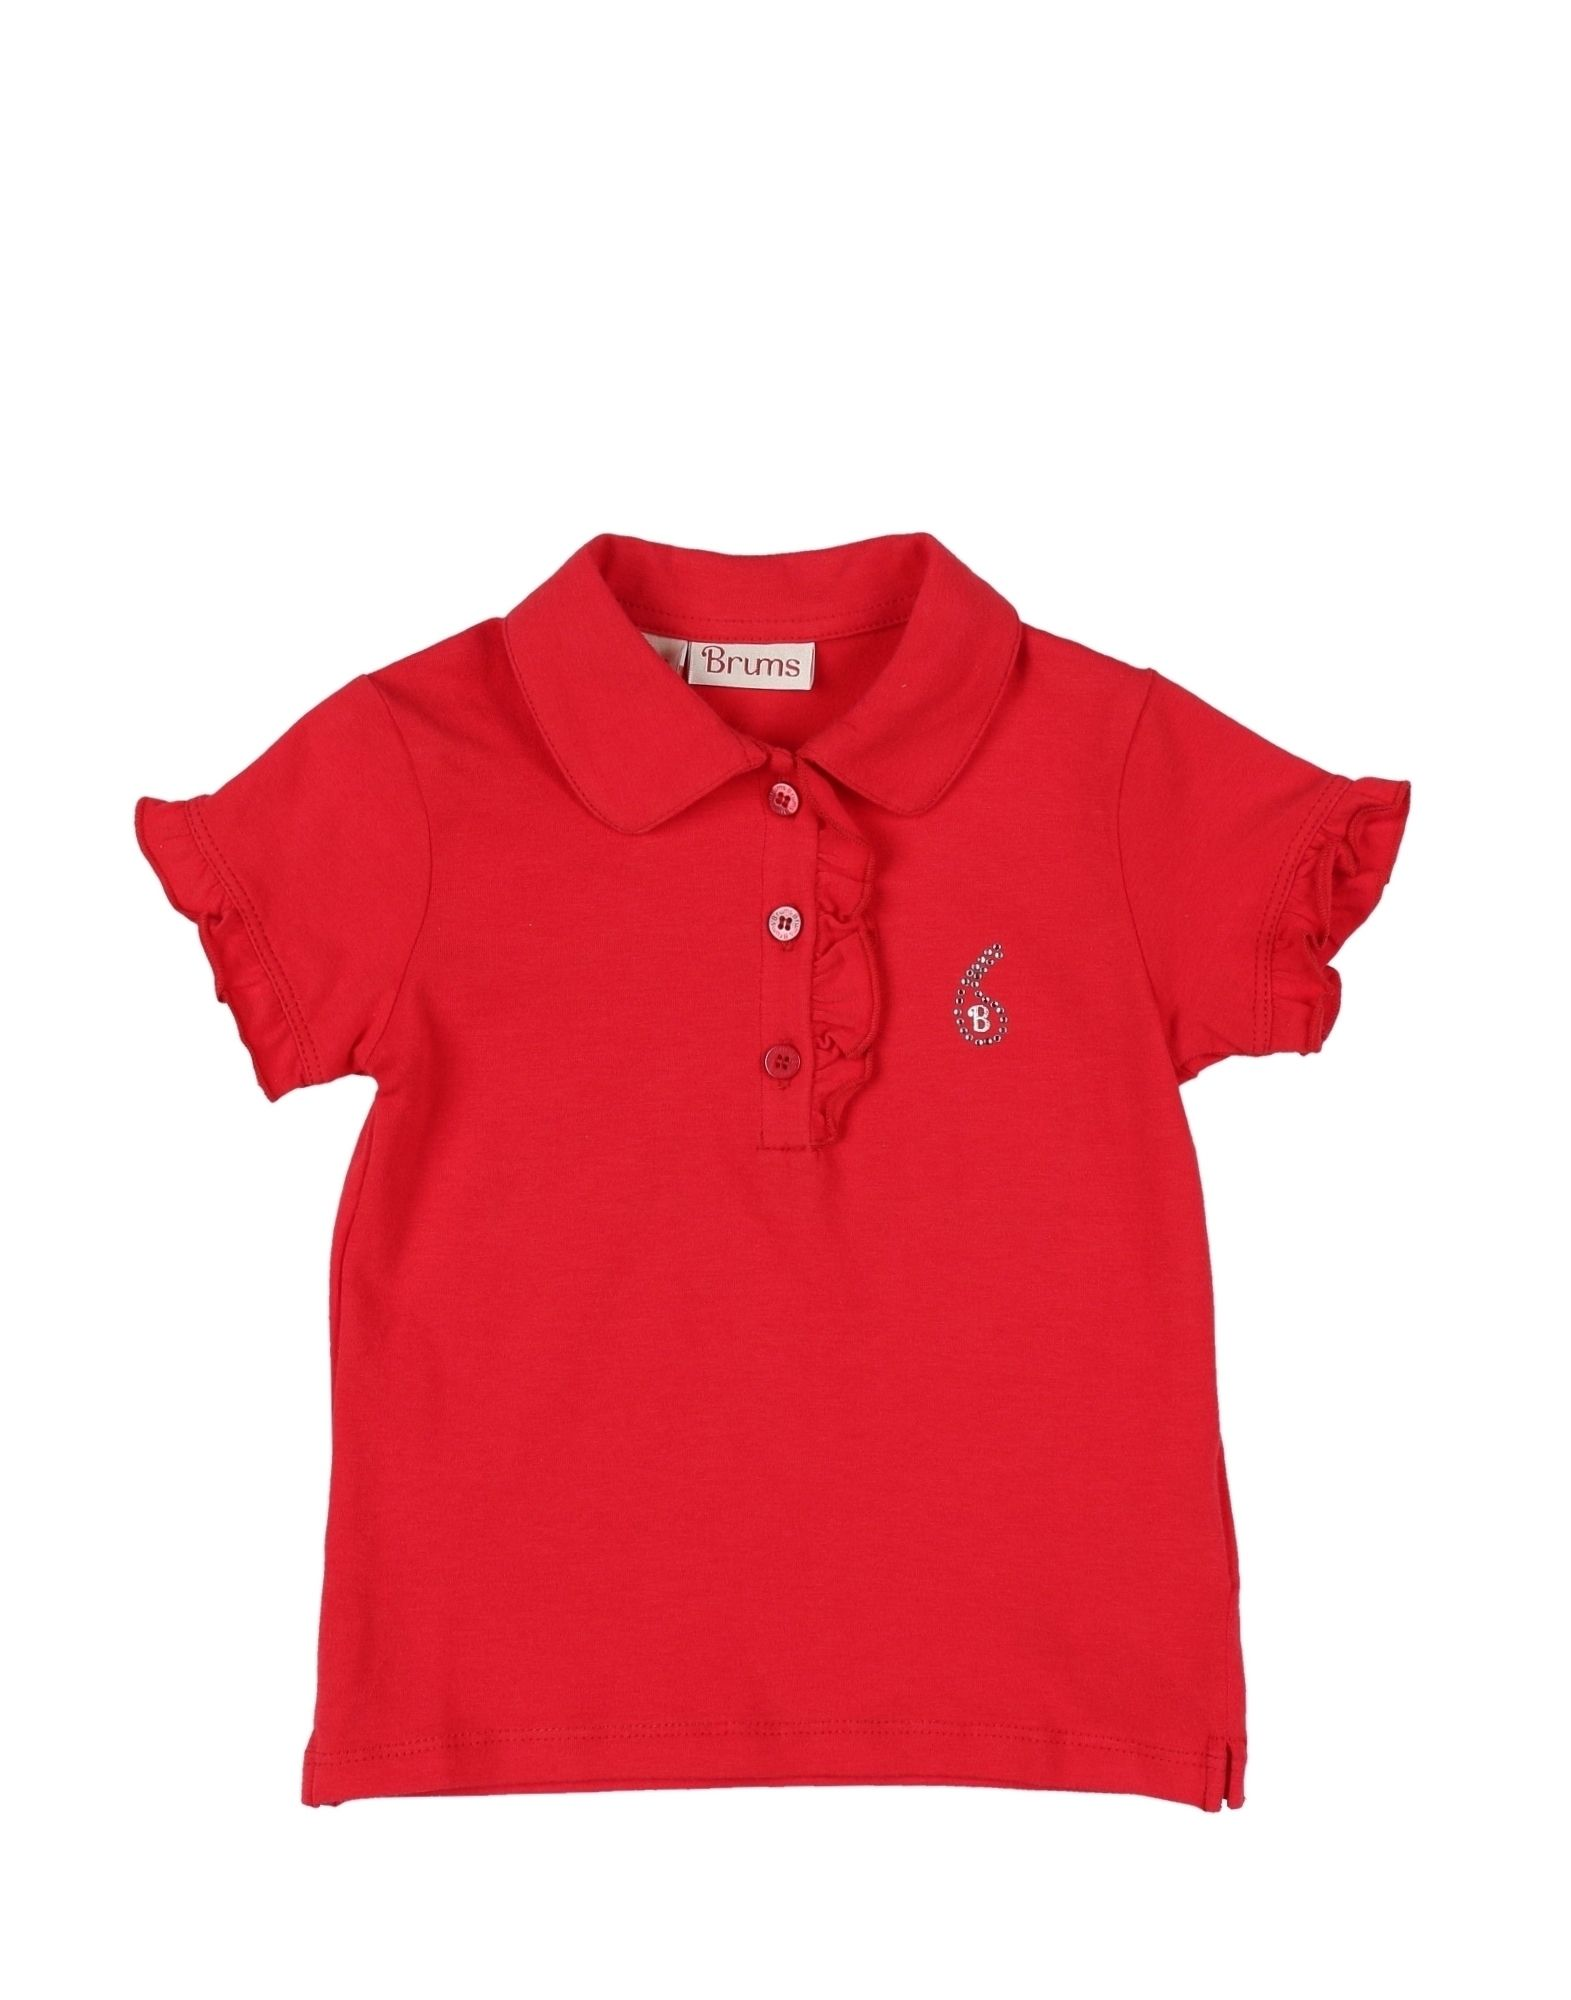 Brums Kids' Polo Shirts In Red